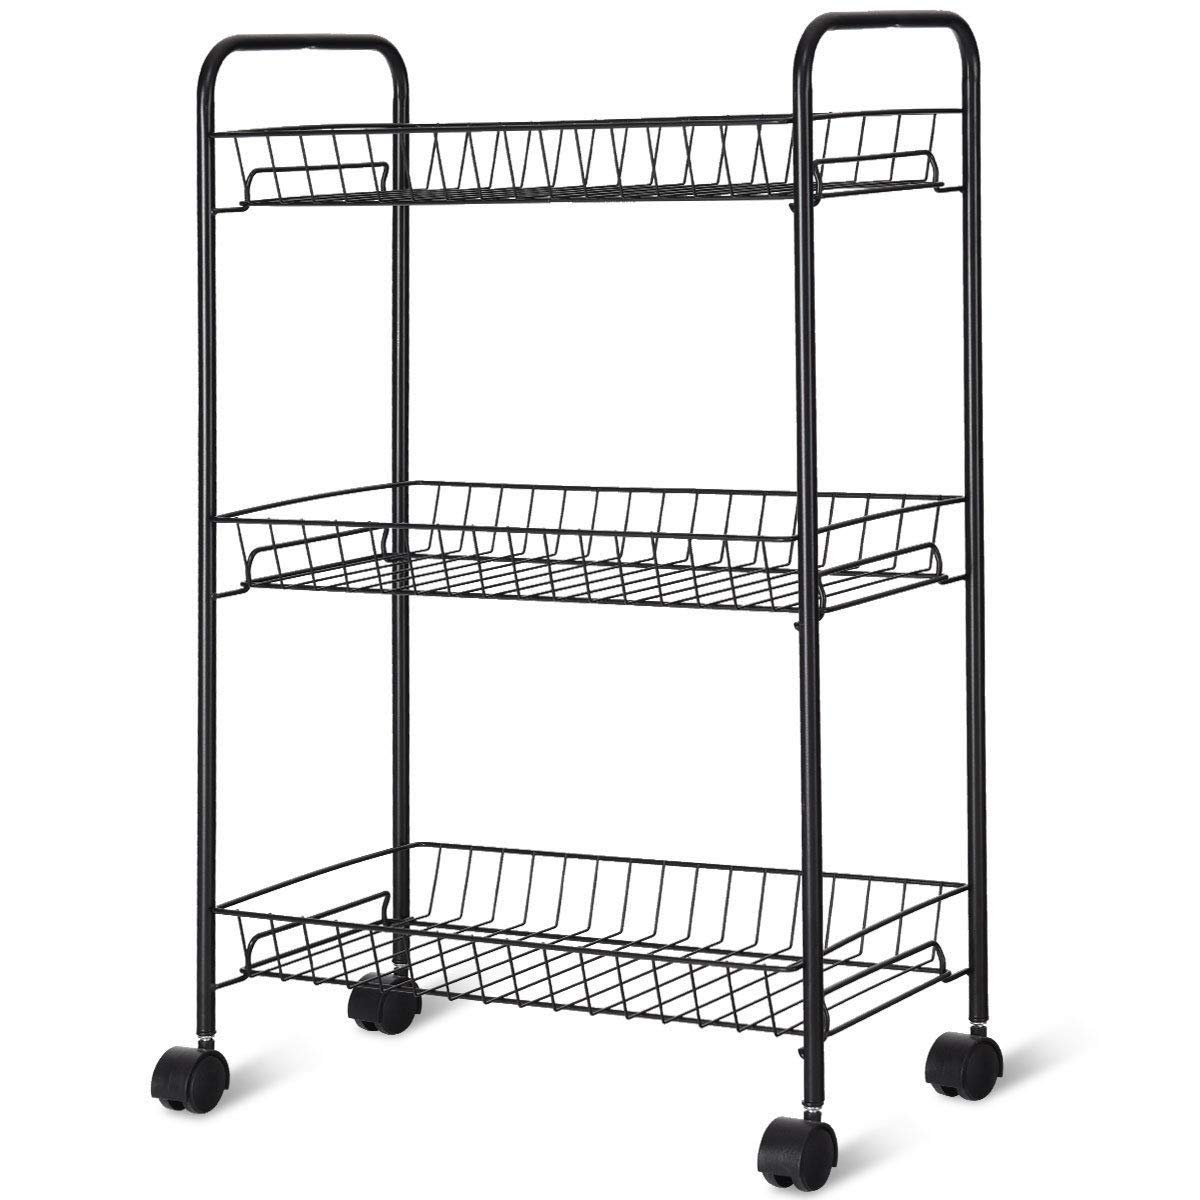 MRT SUPPLY 3 Tier Rolling Kitchen Utility Trolley with Storage Shelf Baskets with Ebook